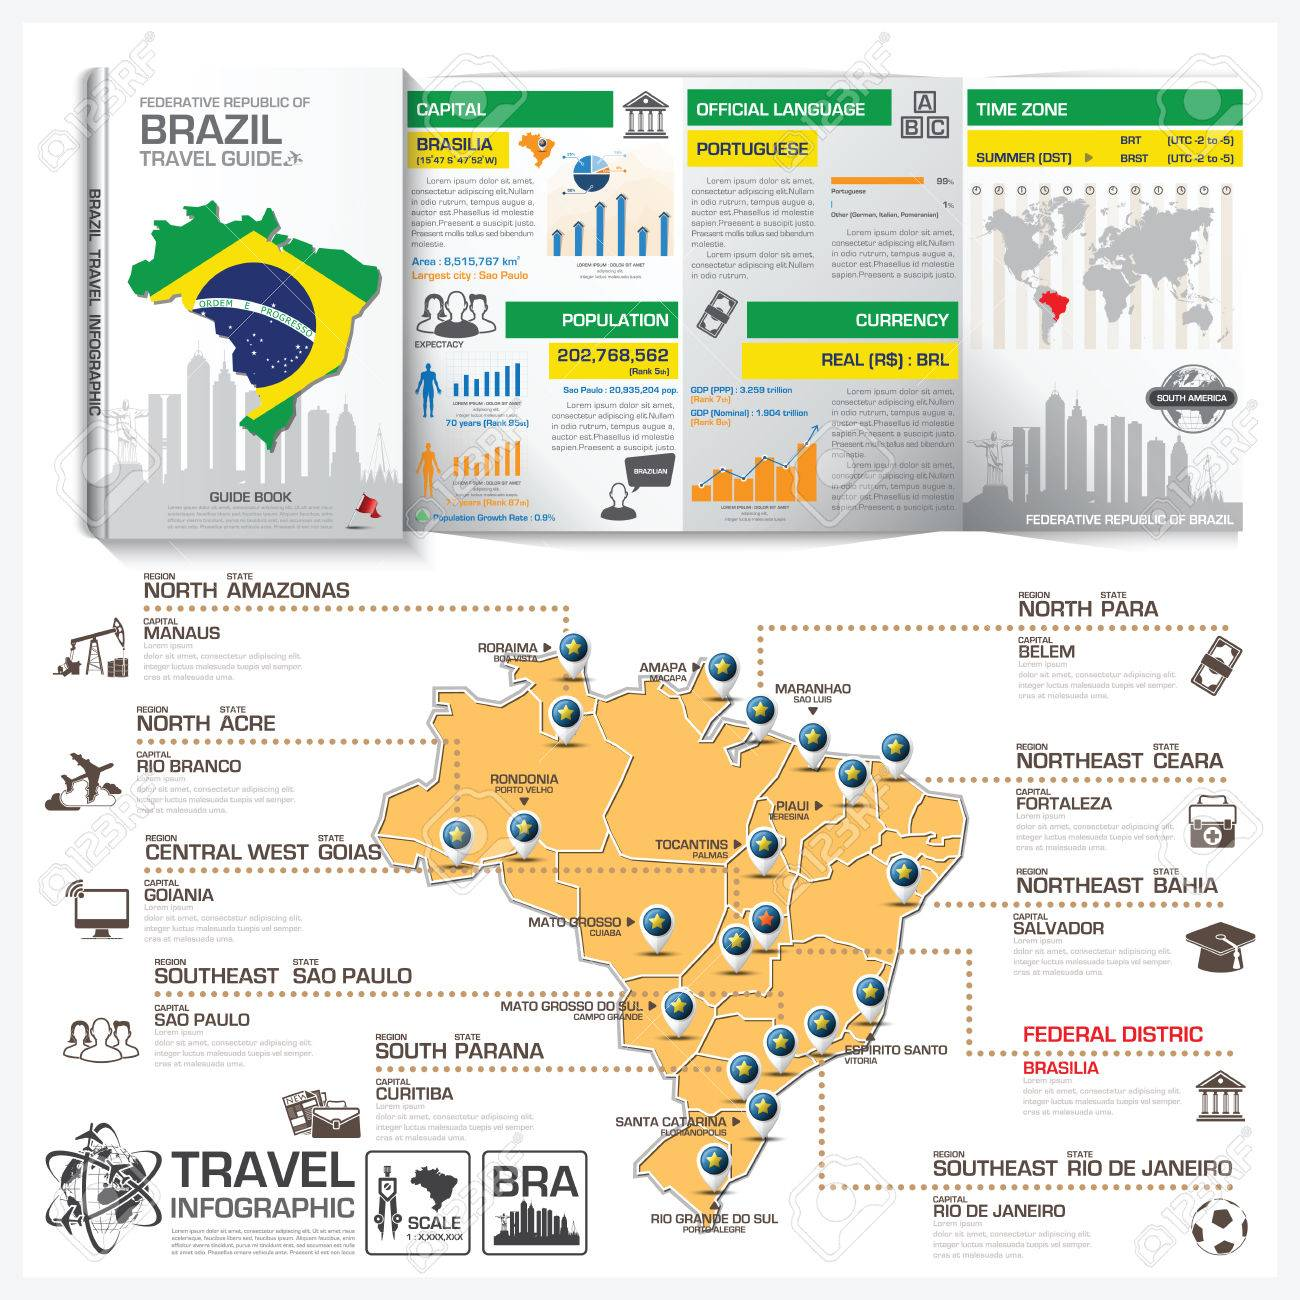 federative republic of brazil travel guide book business infographic